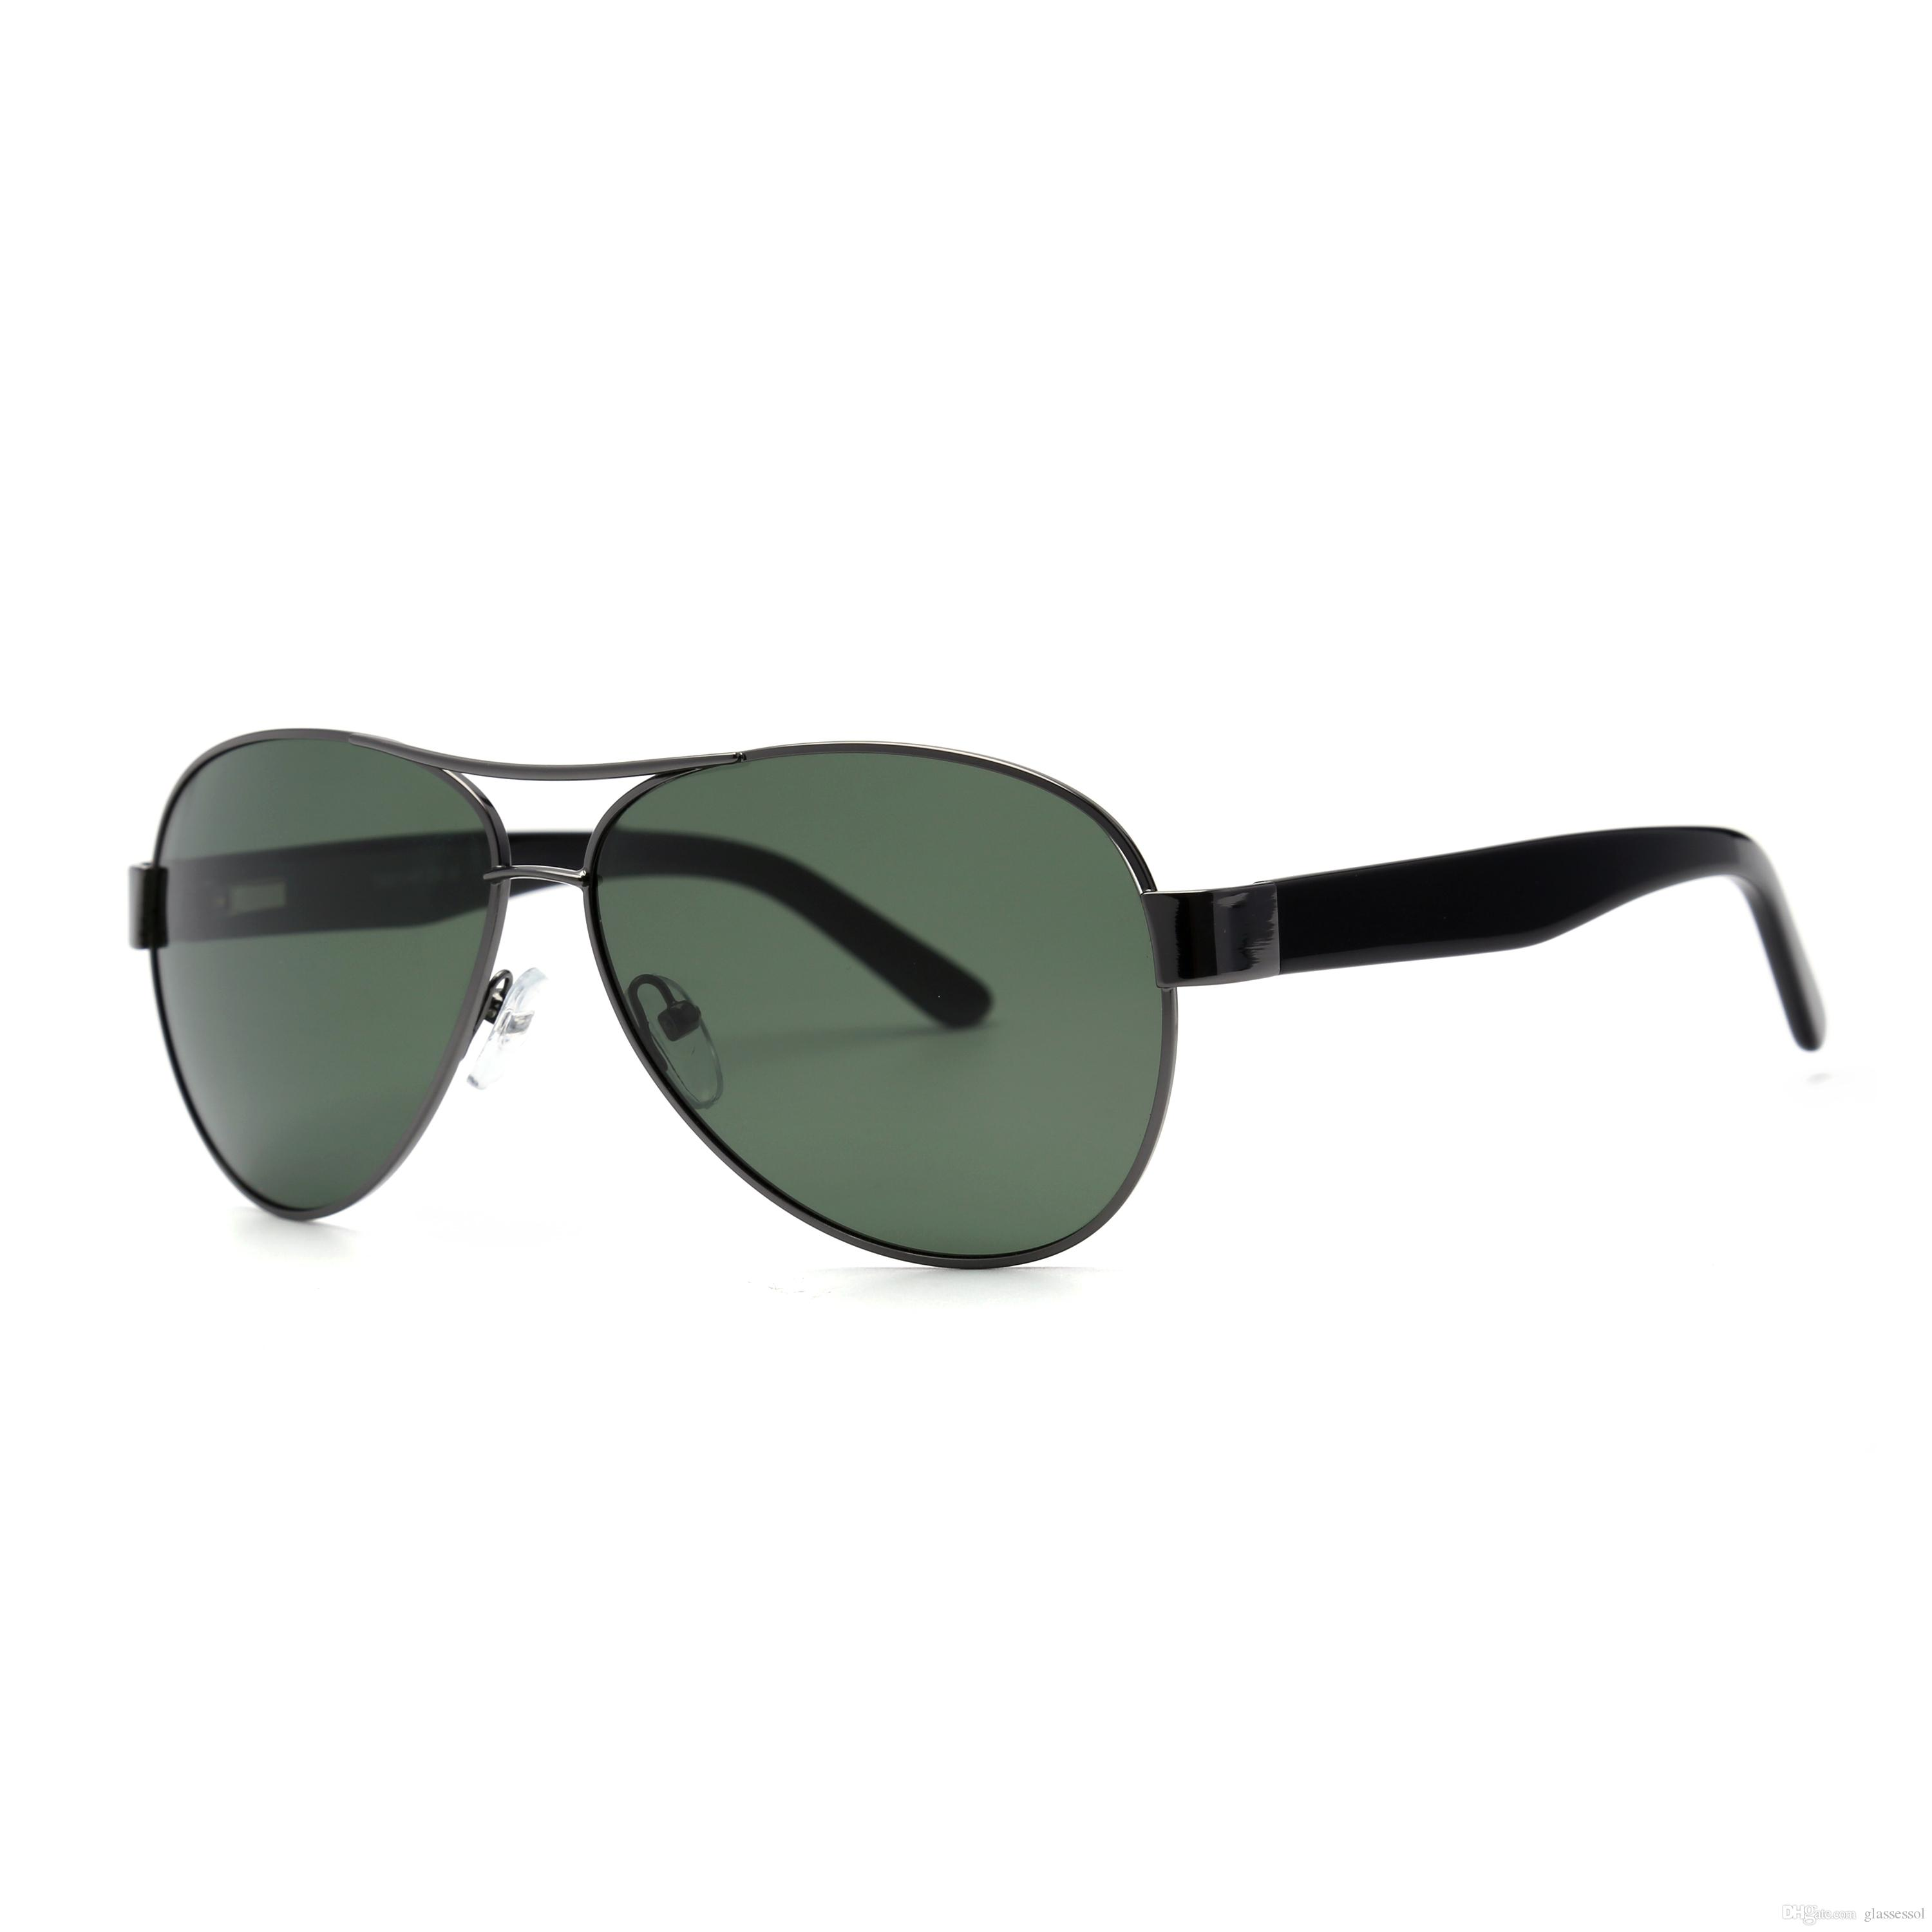 82bf8f5d3 High Quality Polarized Lens Pilot Fashion Sunglasses For Men And ...